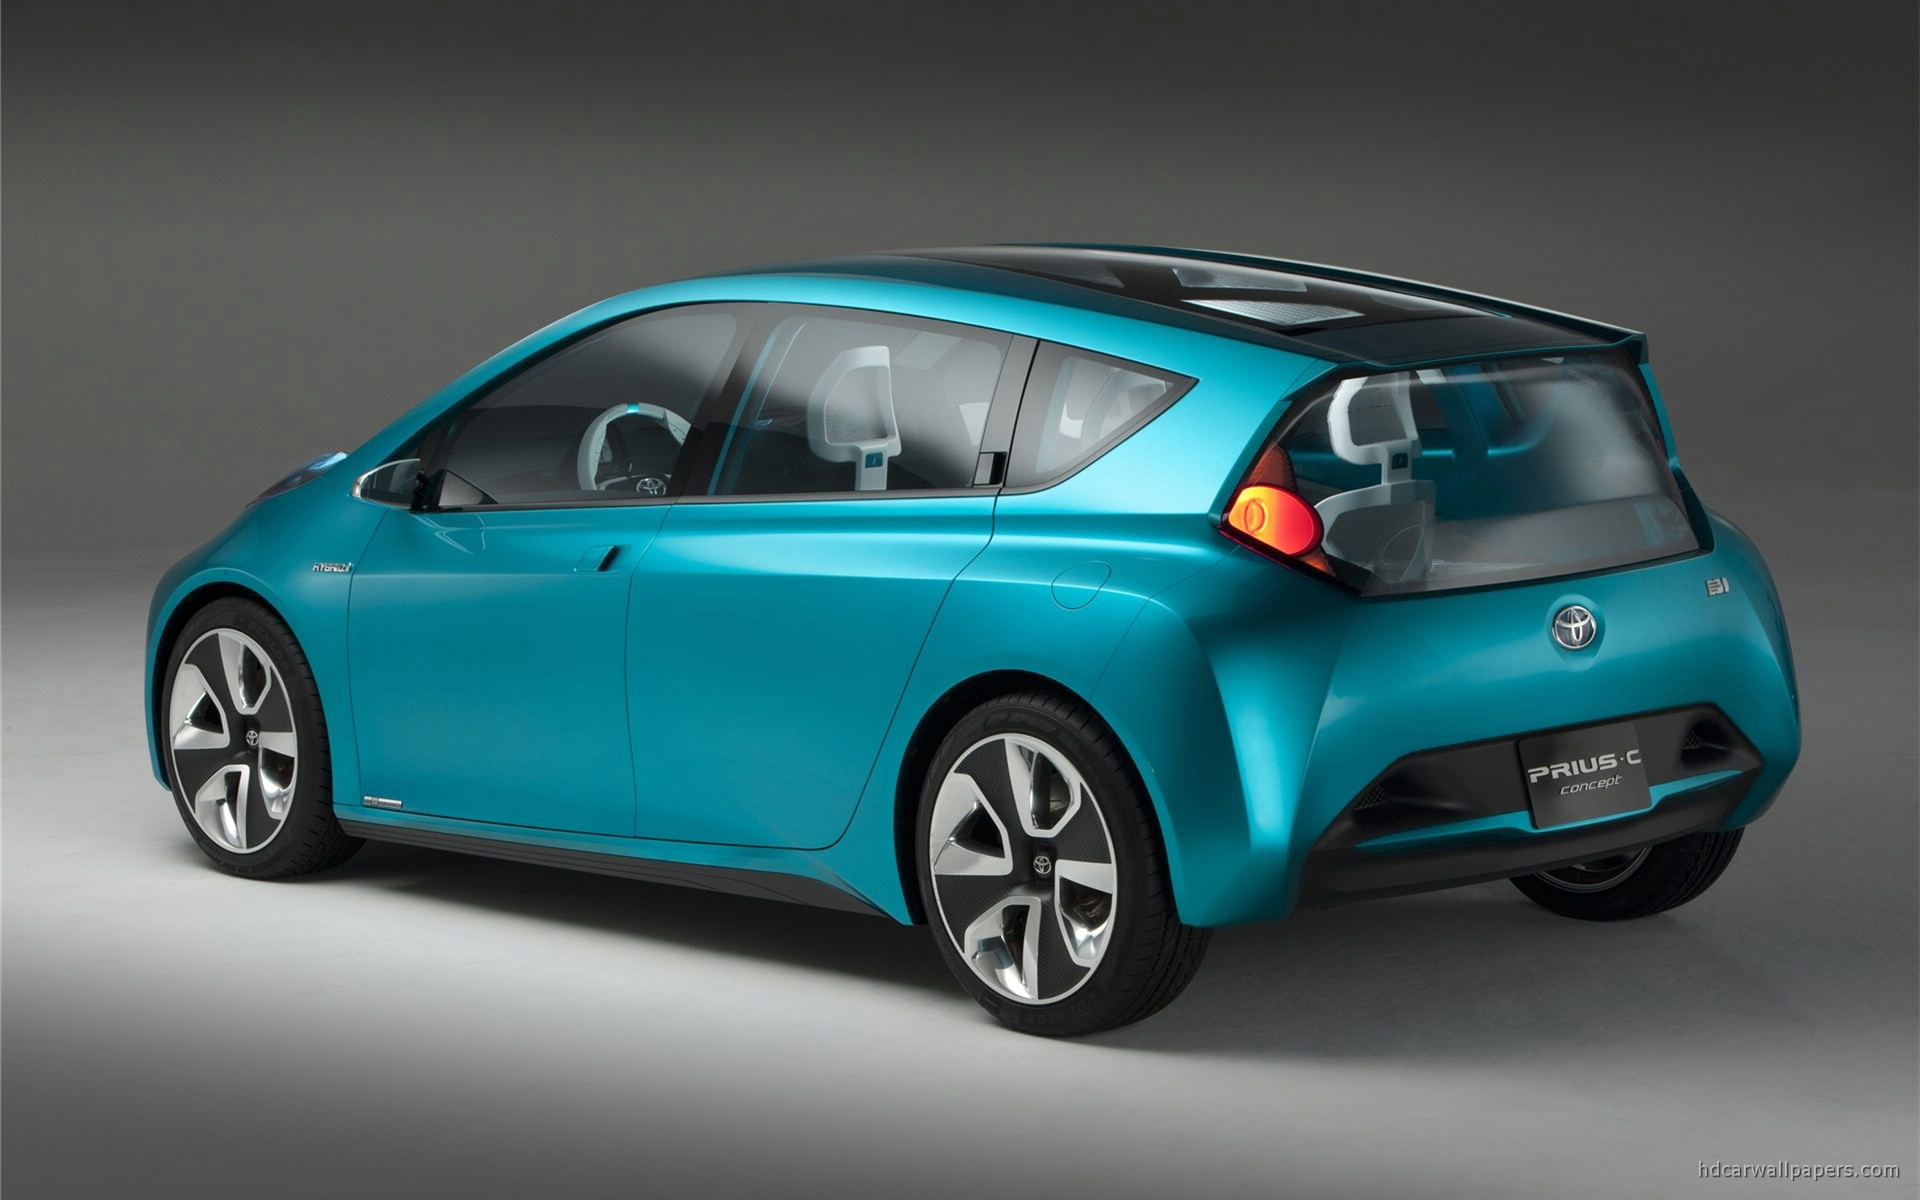 Toyota Prius C 3d Car Toyota - Prius C Concept , HD Wallpaper & Backgrounds